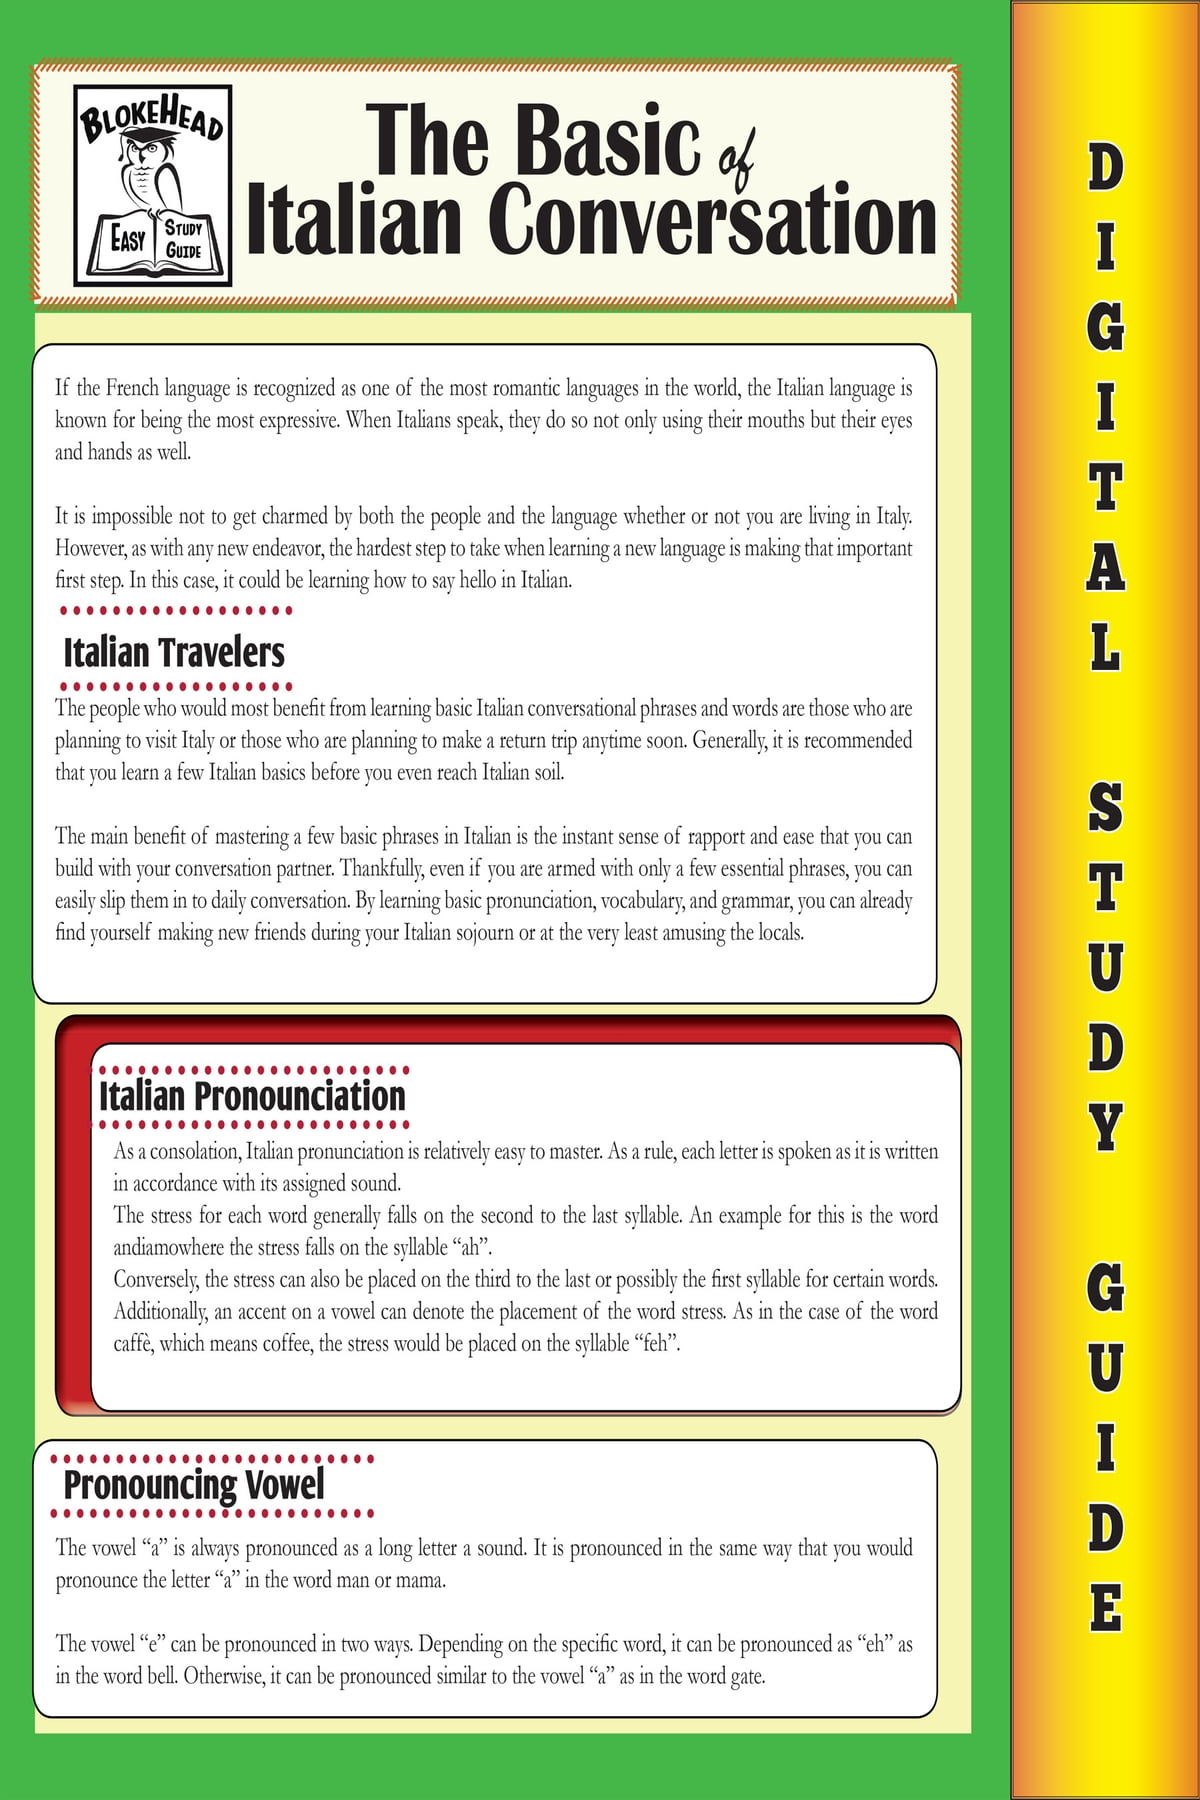 Italian Conversation (Blokehead Easy Study Guide) ebook by The Blokehead -  Rakuten Kobo